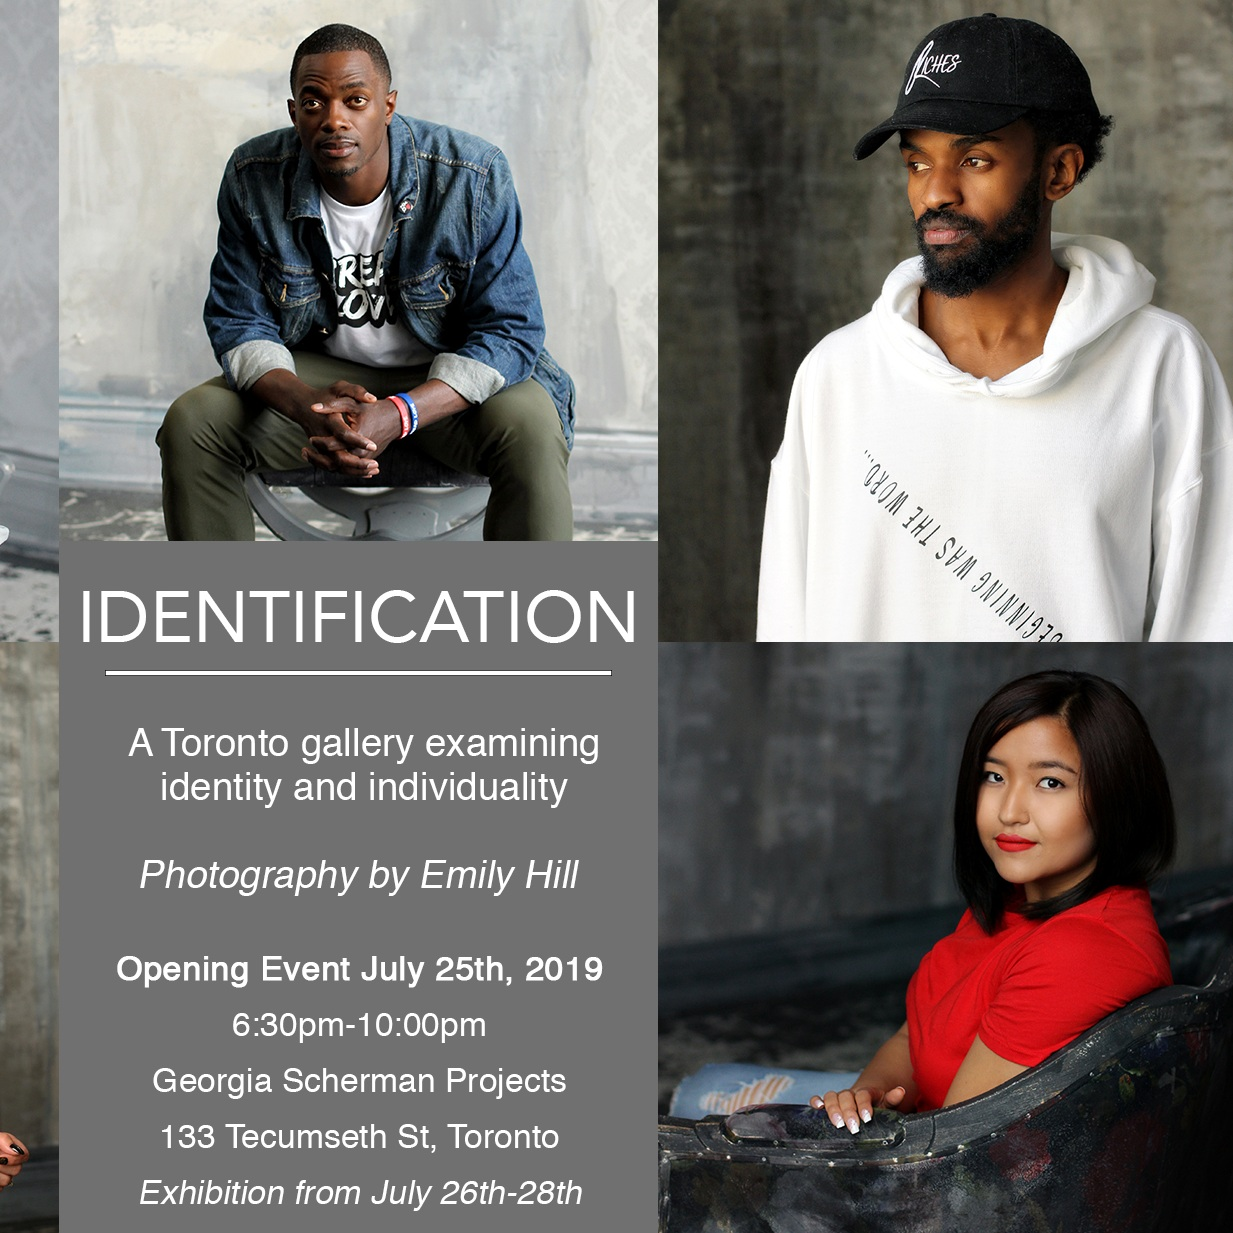 IDENTIFICATION   Co-presentation between the  Film Stars Project  and the  Forgiveness Project,  photography by  Emily Hill   July 26 - July 28, 2019